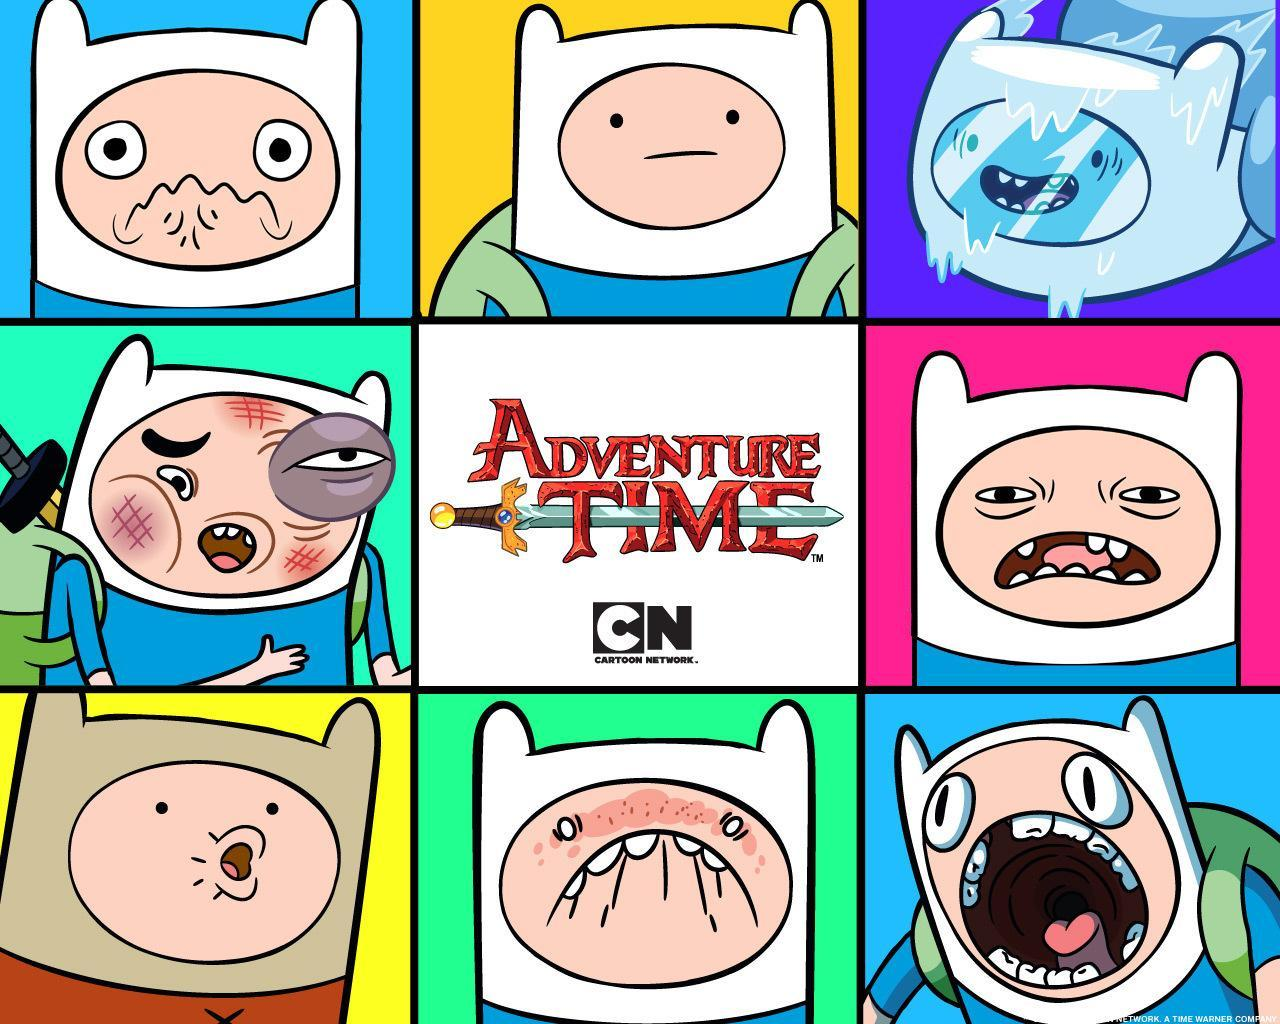 30 day Adventure Time challenge